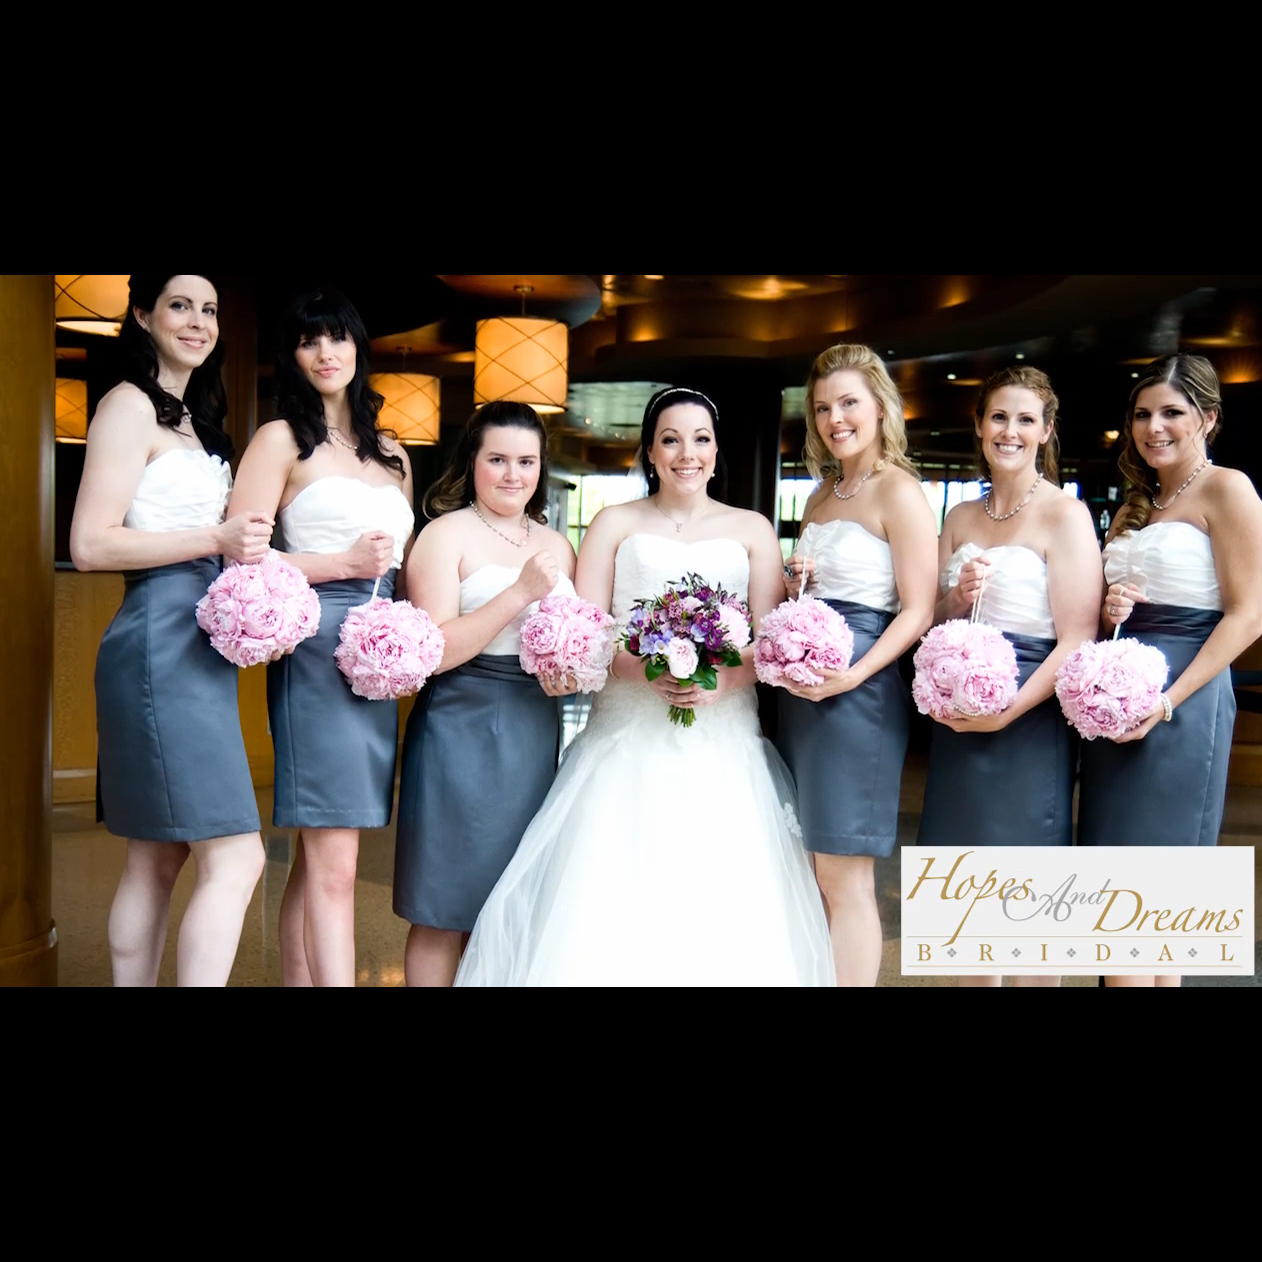 Hopes And Dreams Bridal - Bridal Shops - 613-226-5950